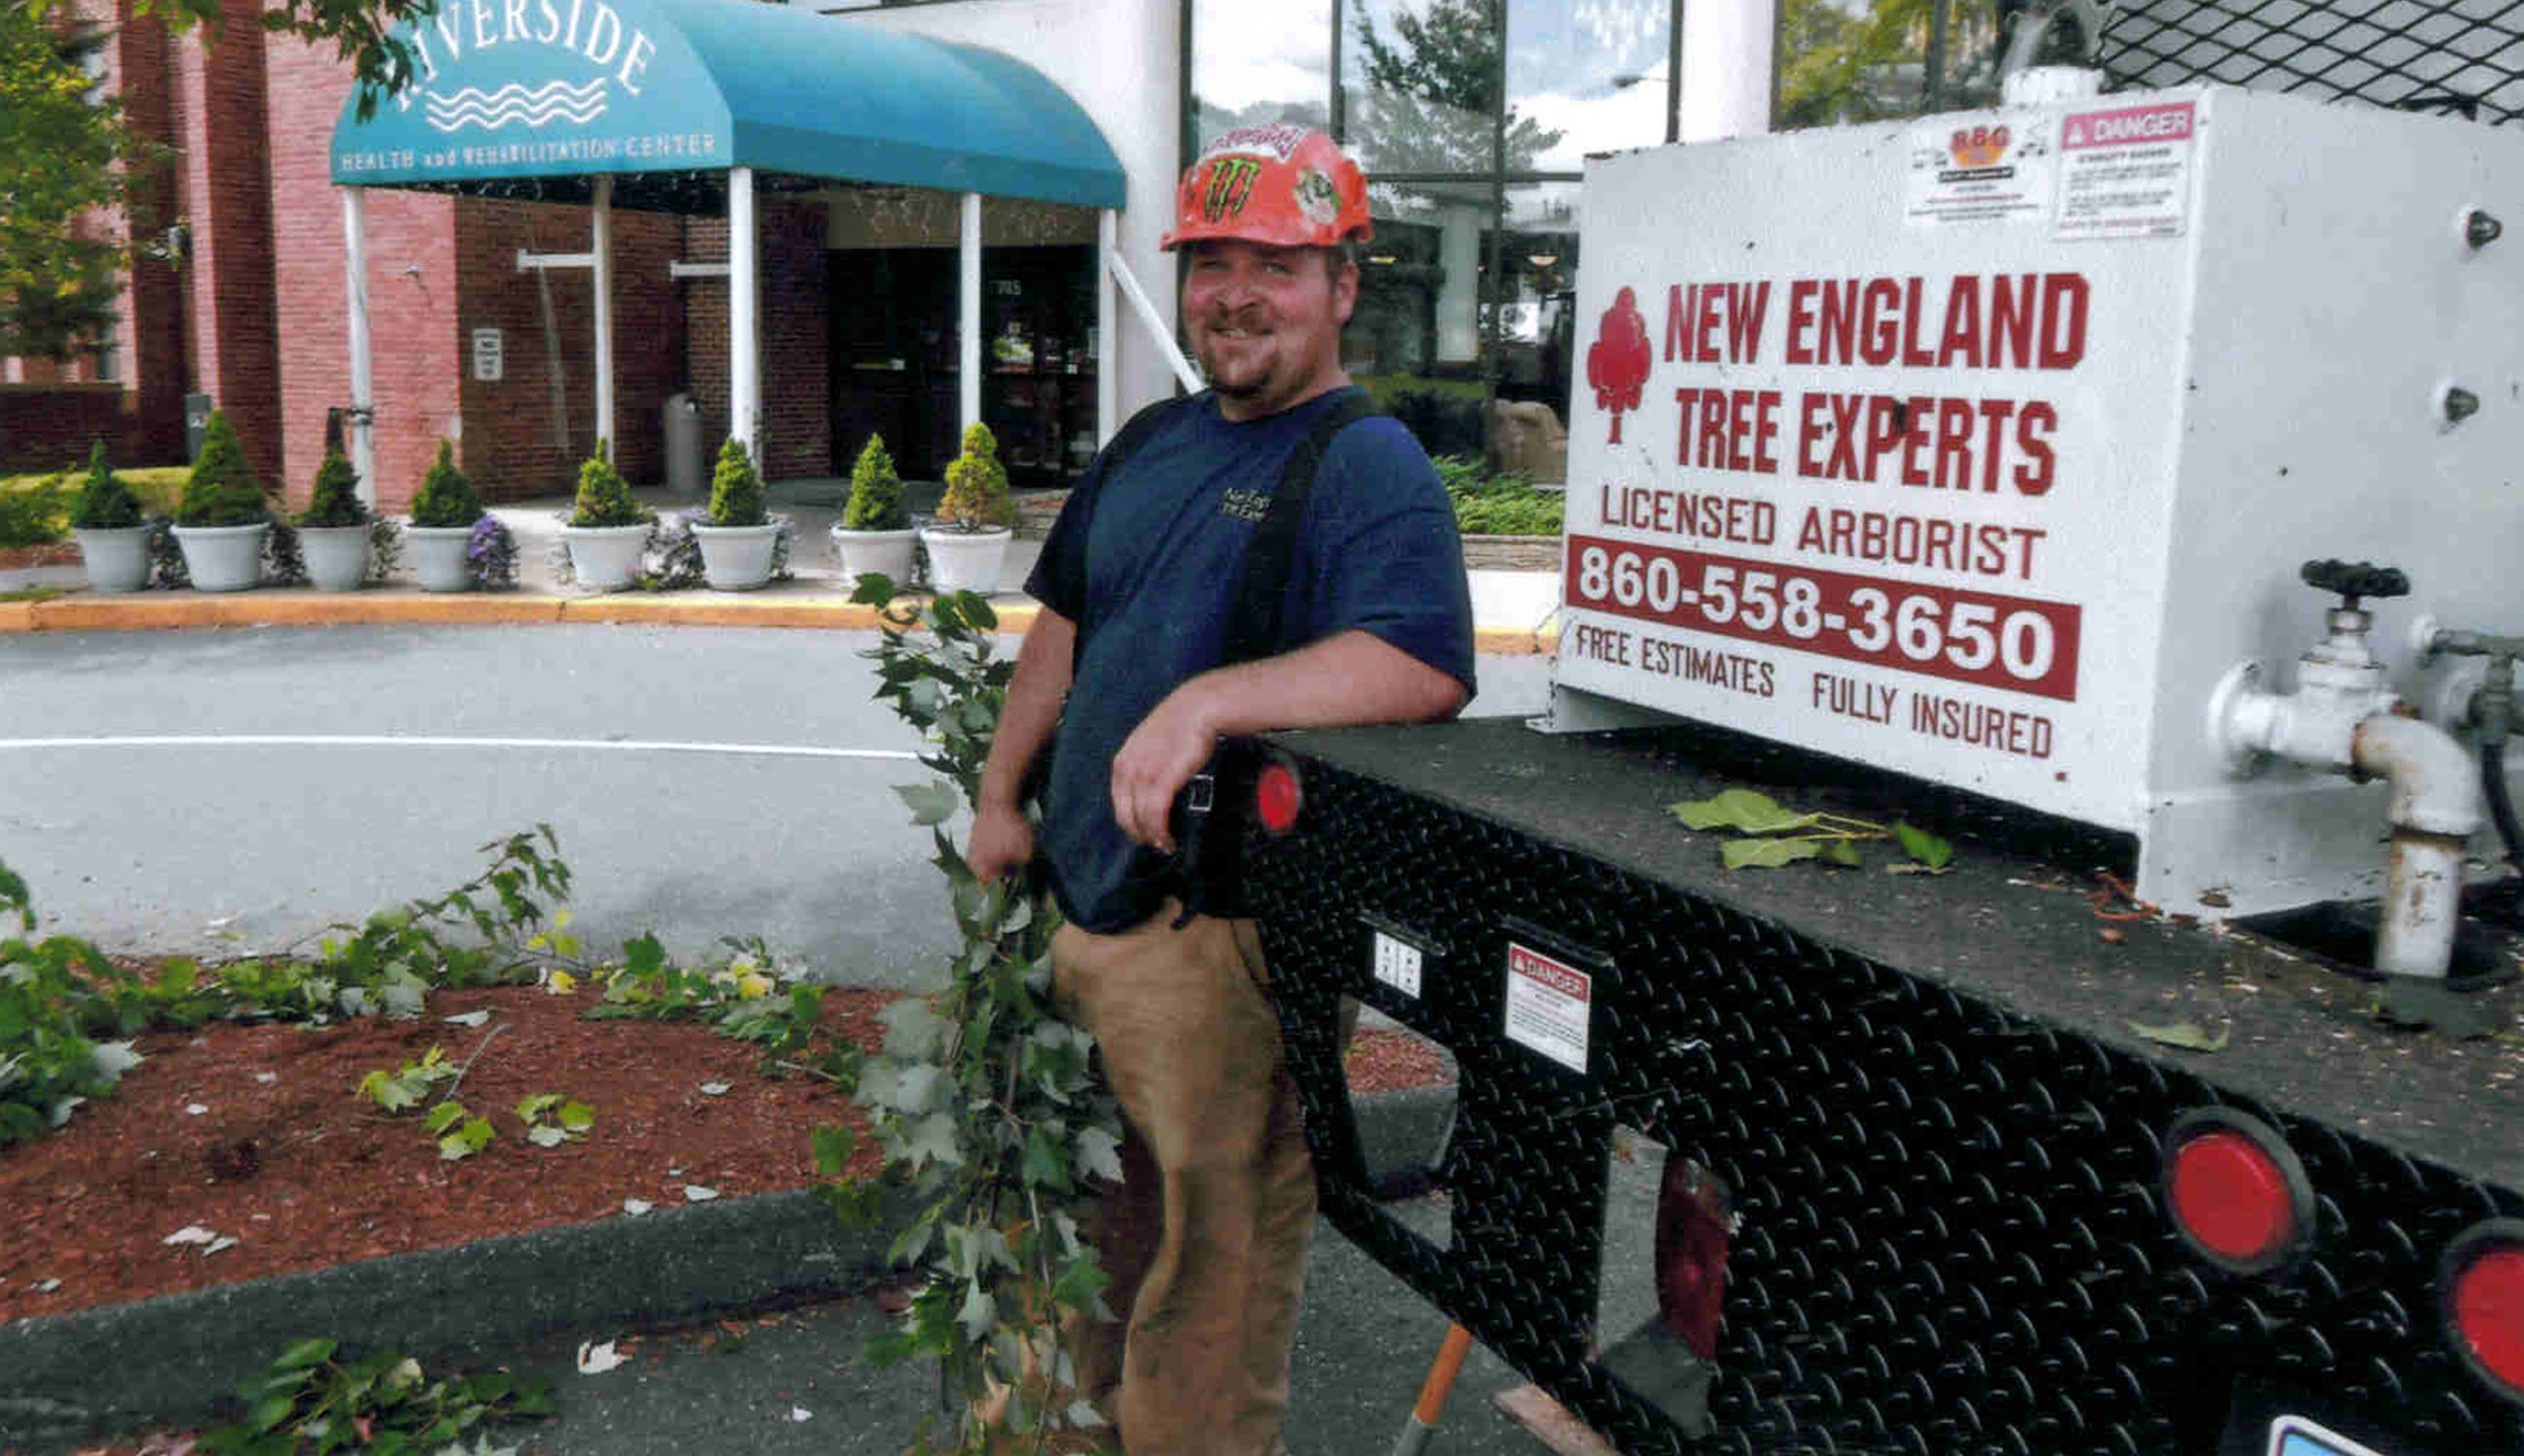 New England Tree Experts